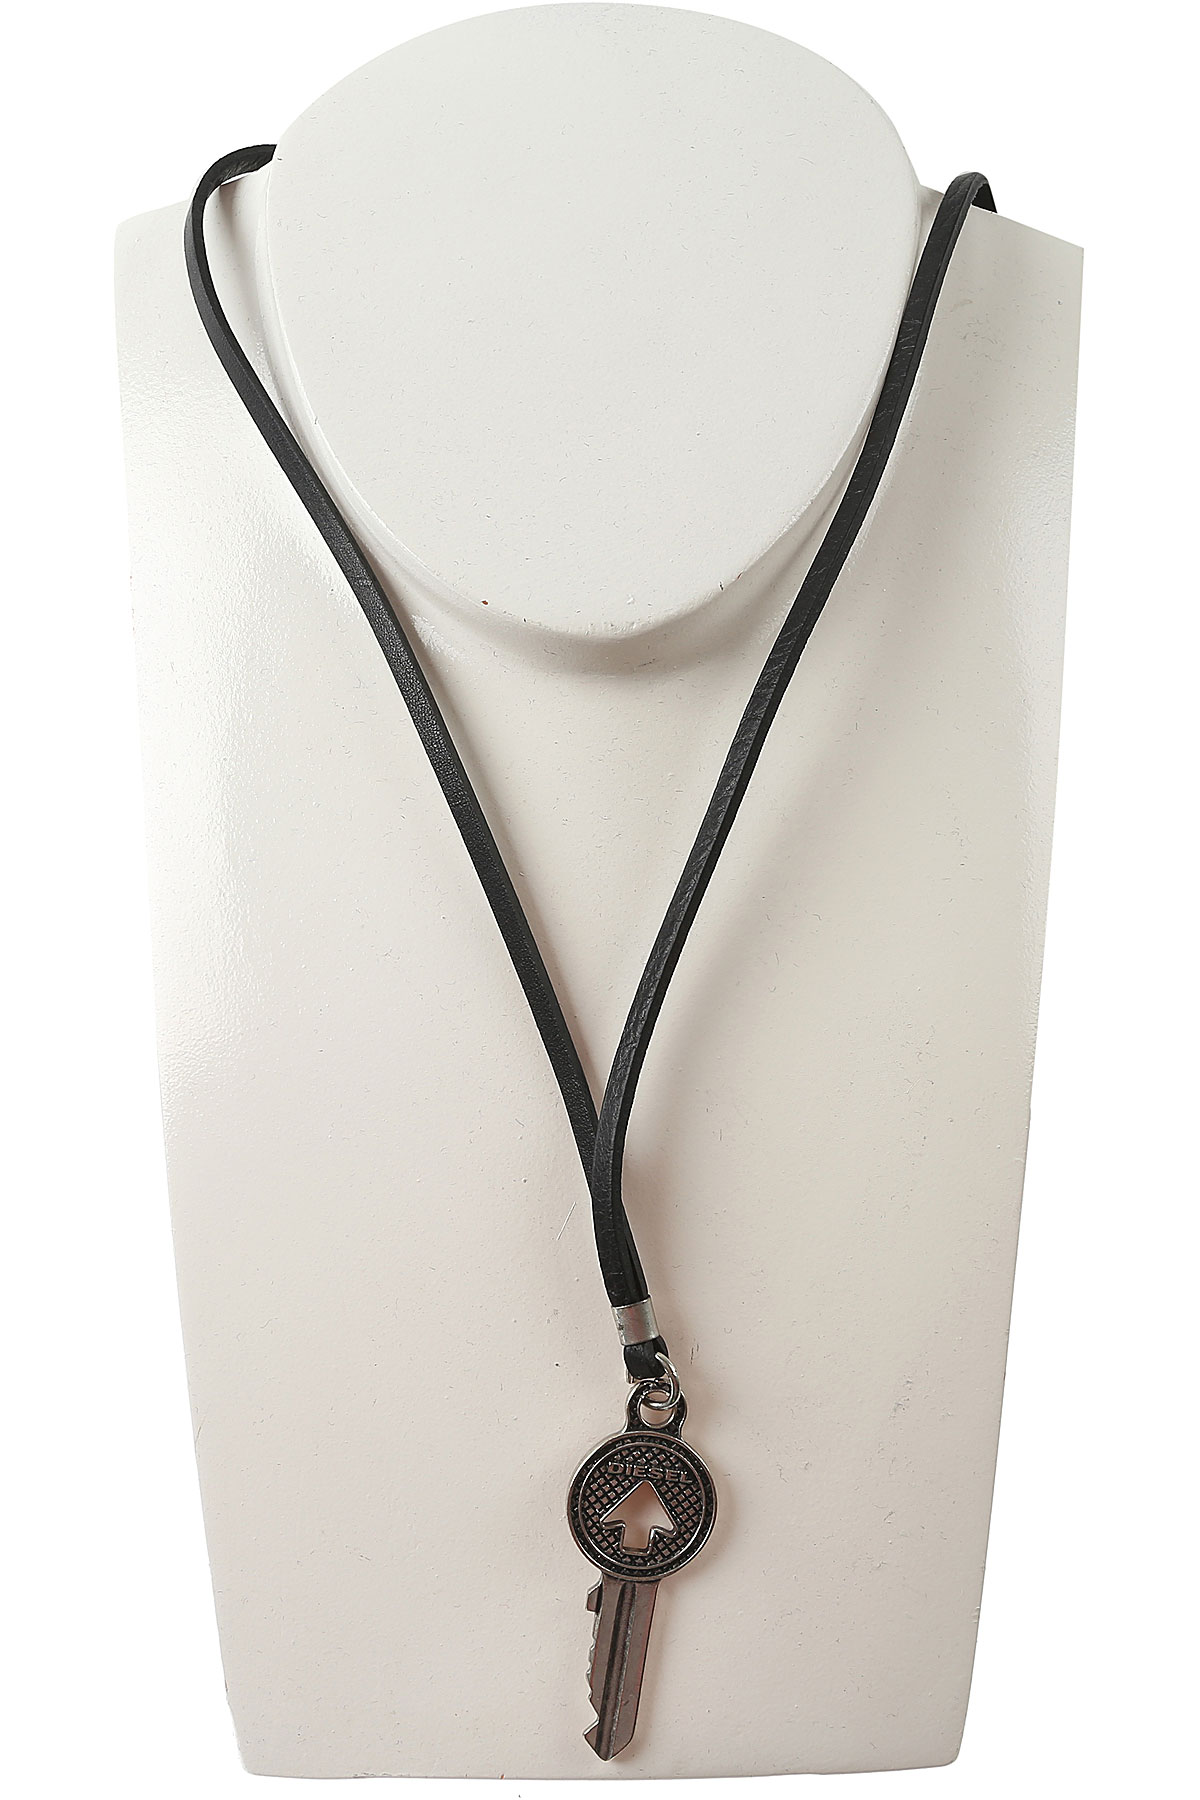 Image of Diesel Necklaces On Sale in Outlet, Openthedoor, Black, Zamack, 2017